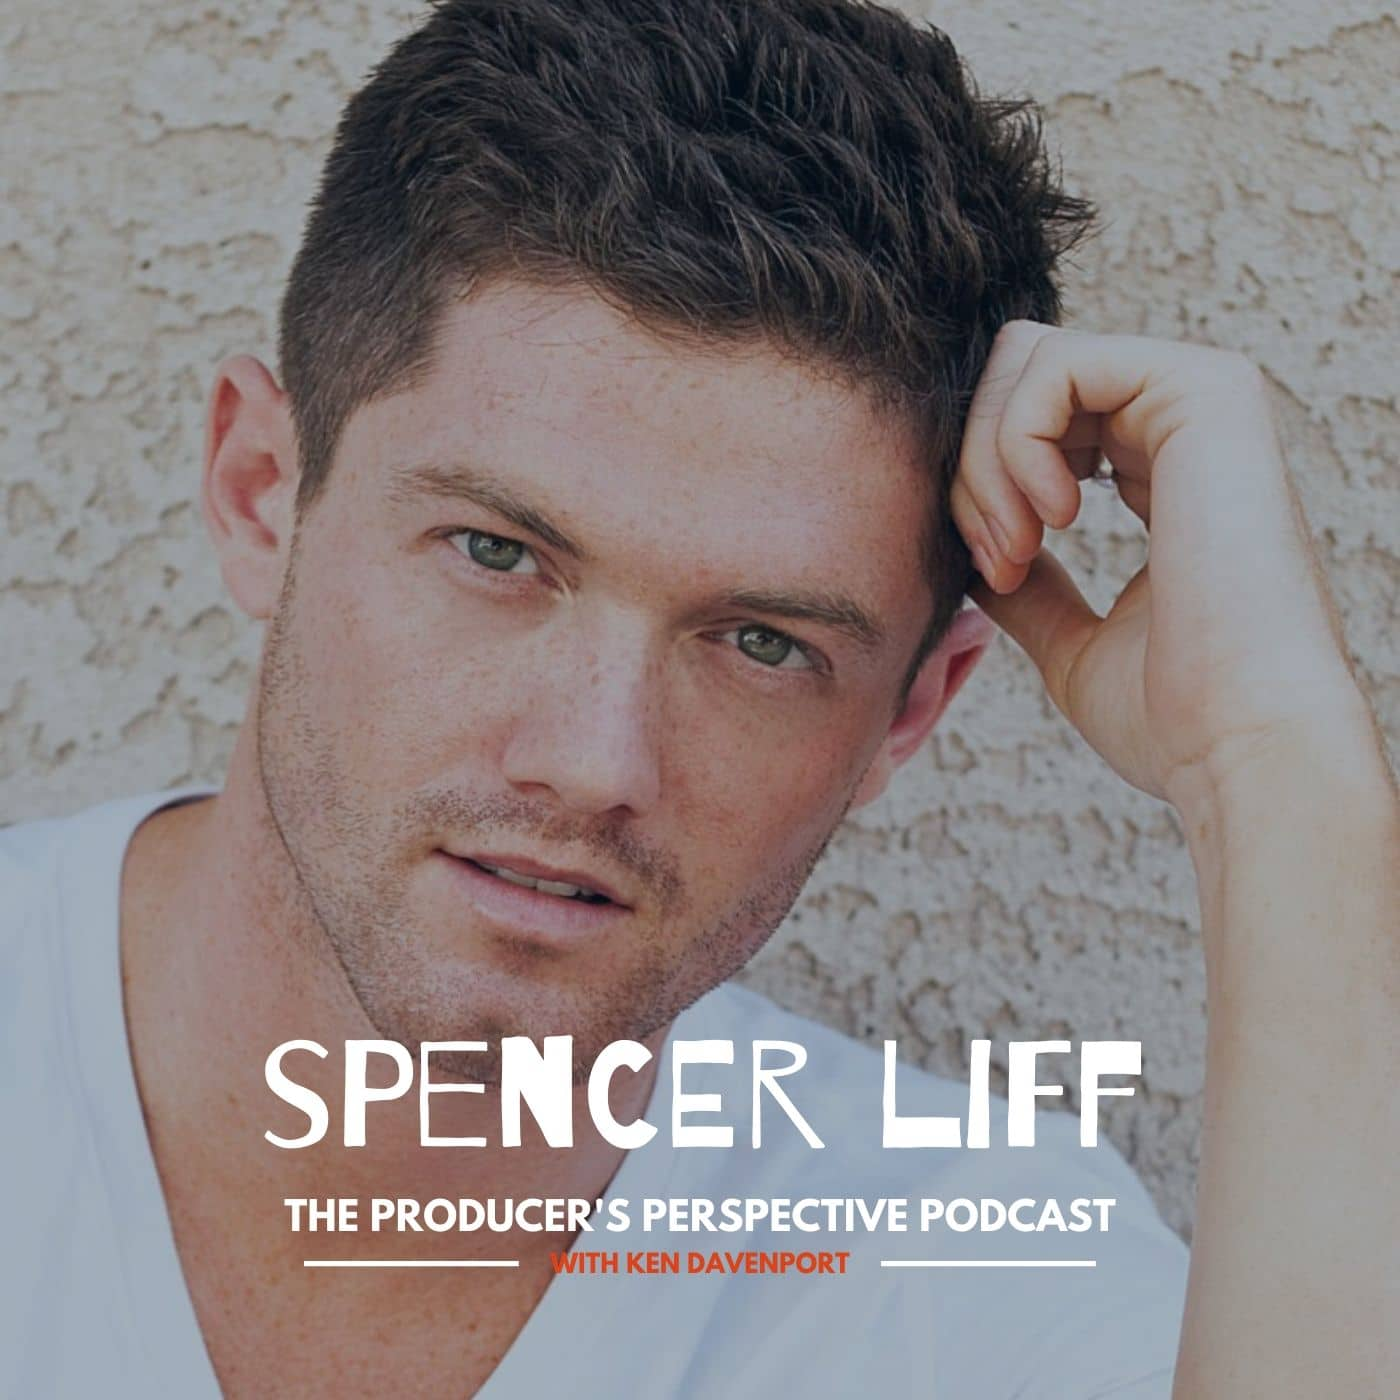 Ken Davenport's The Producer's Perspective Podcast Episode 39 - Spencer Liff